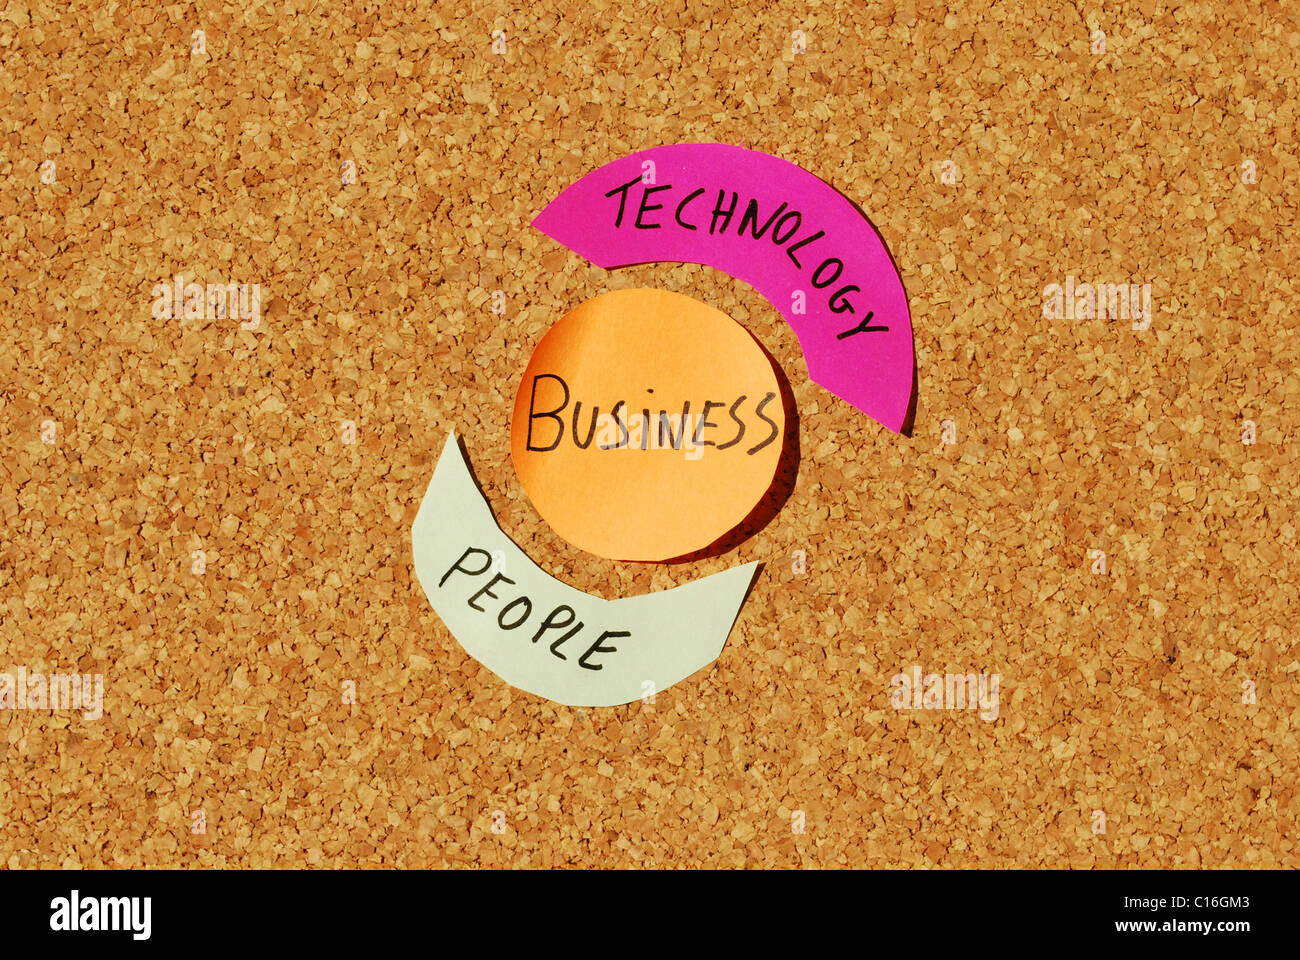 concept of business cycle and definition on a cork board with color notes - Stock Image